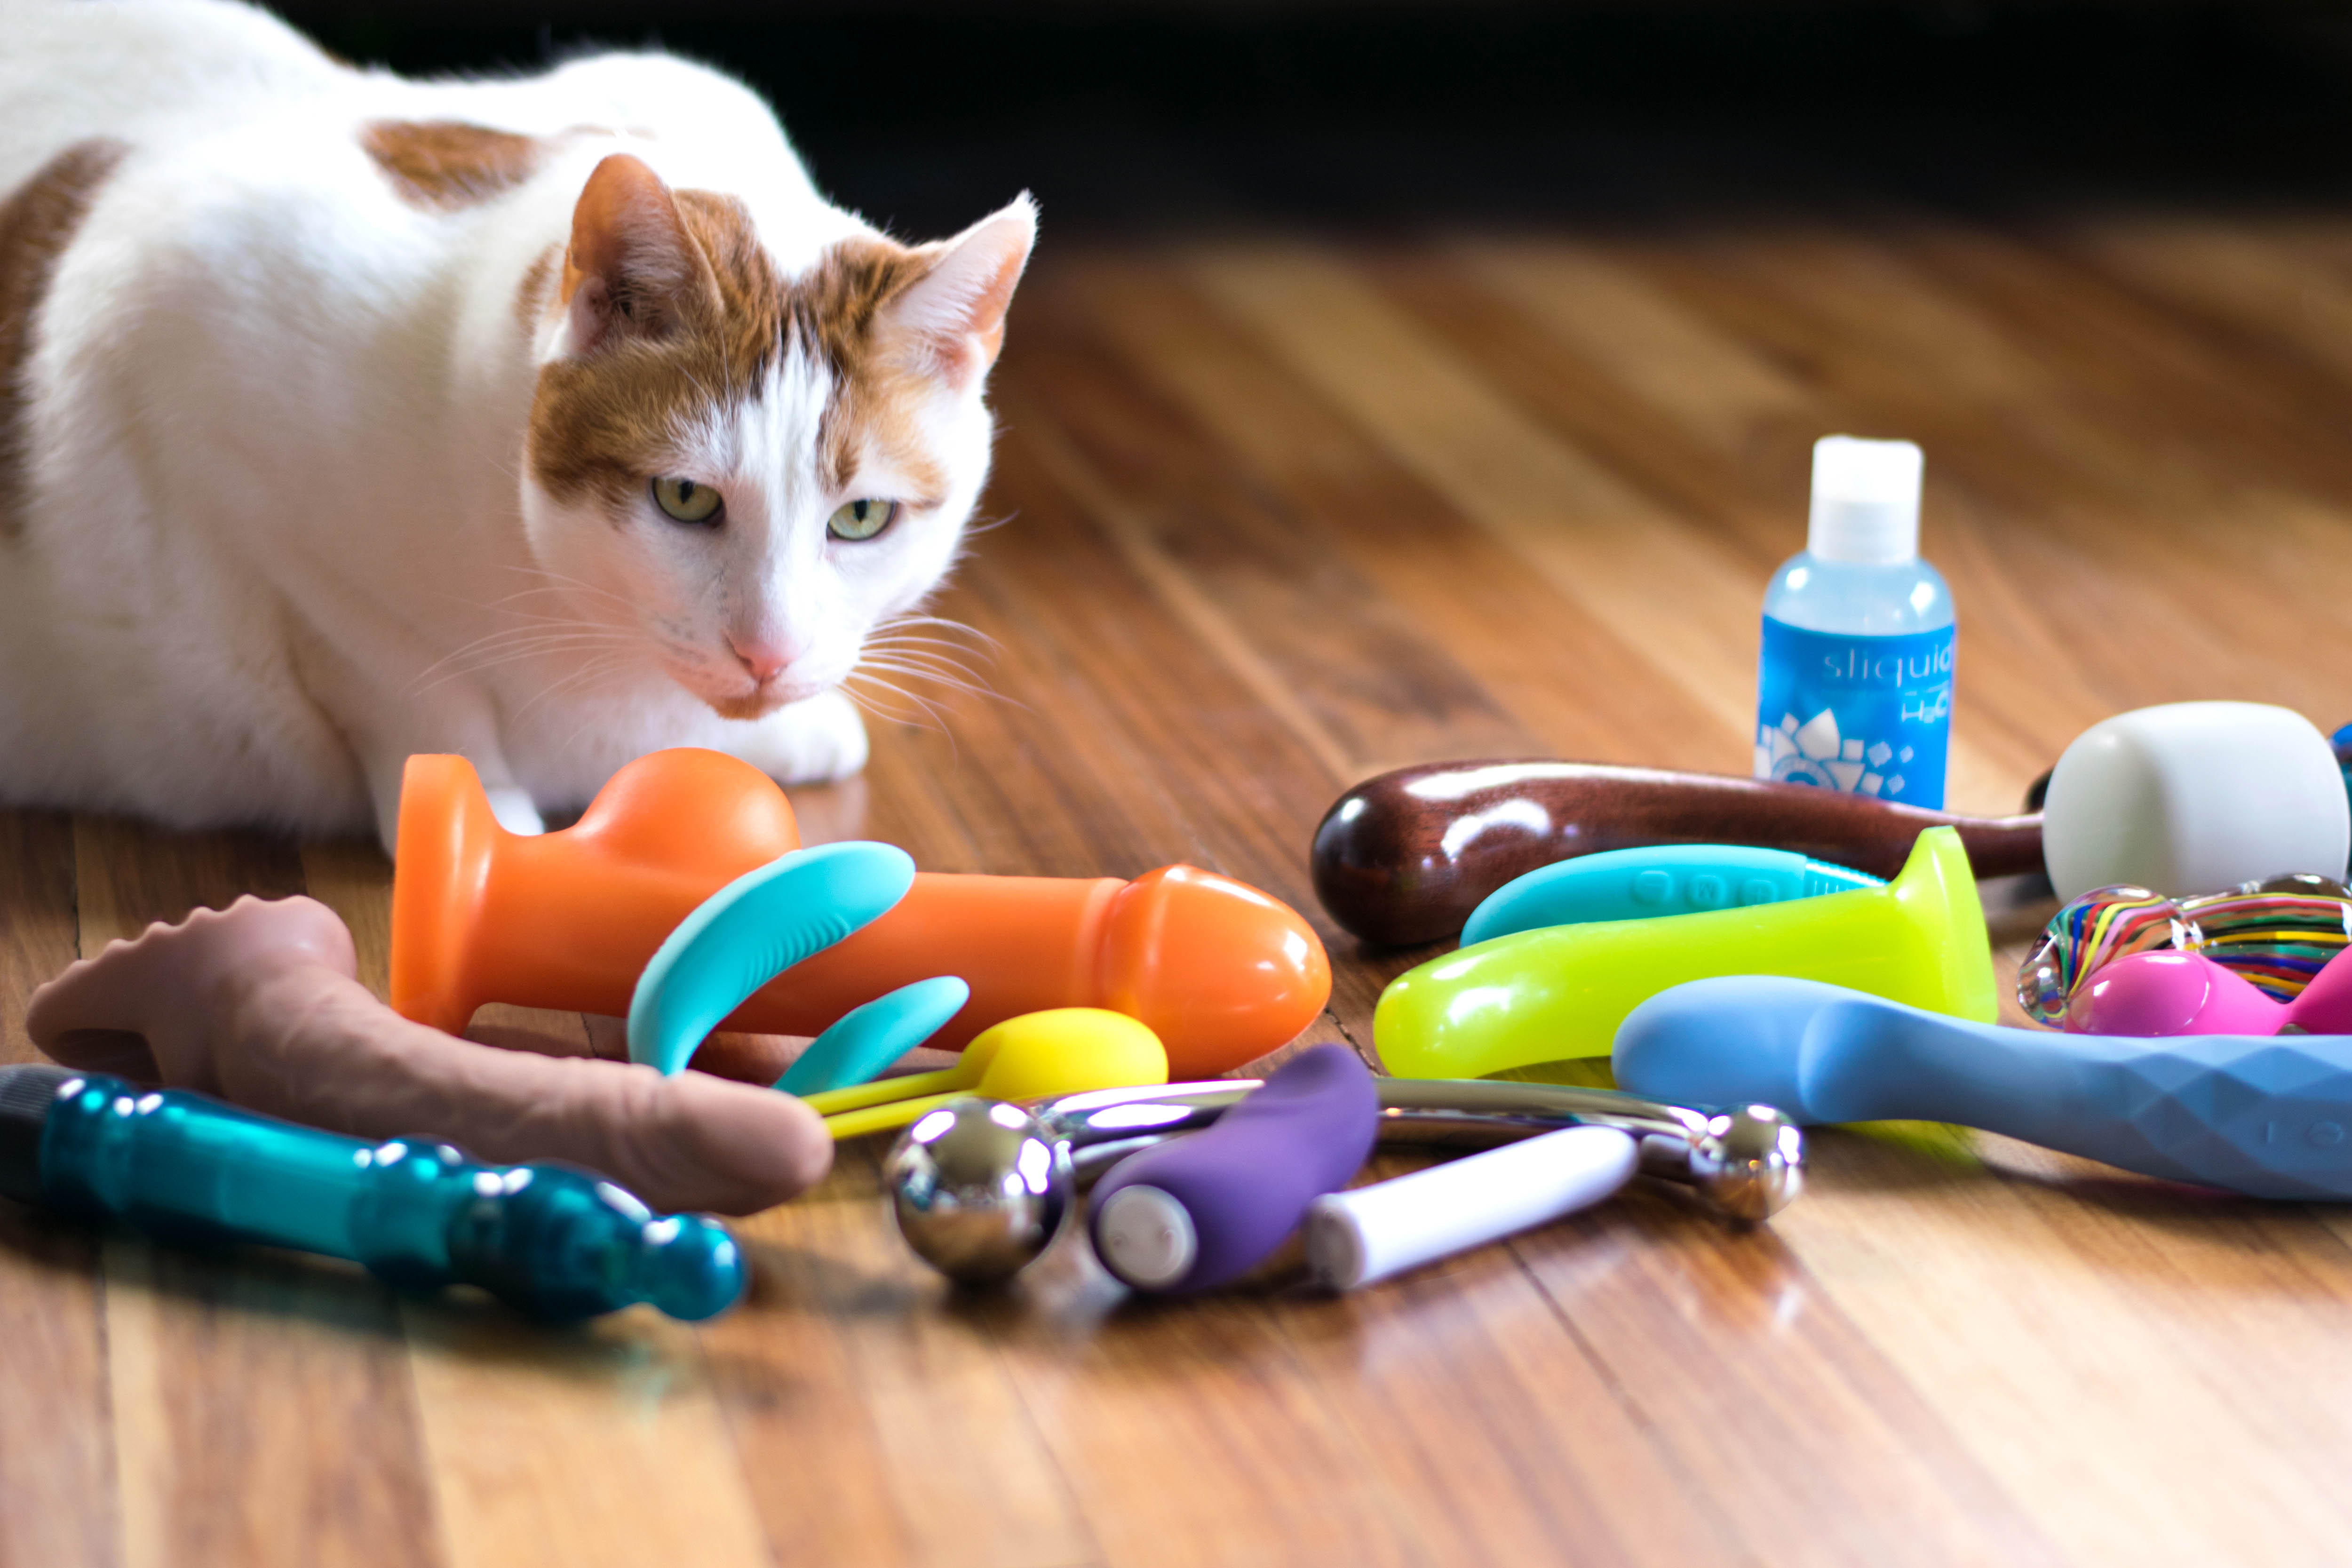 My huge cat Chowder with a bunch of sex toys splayed out on the floor.